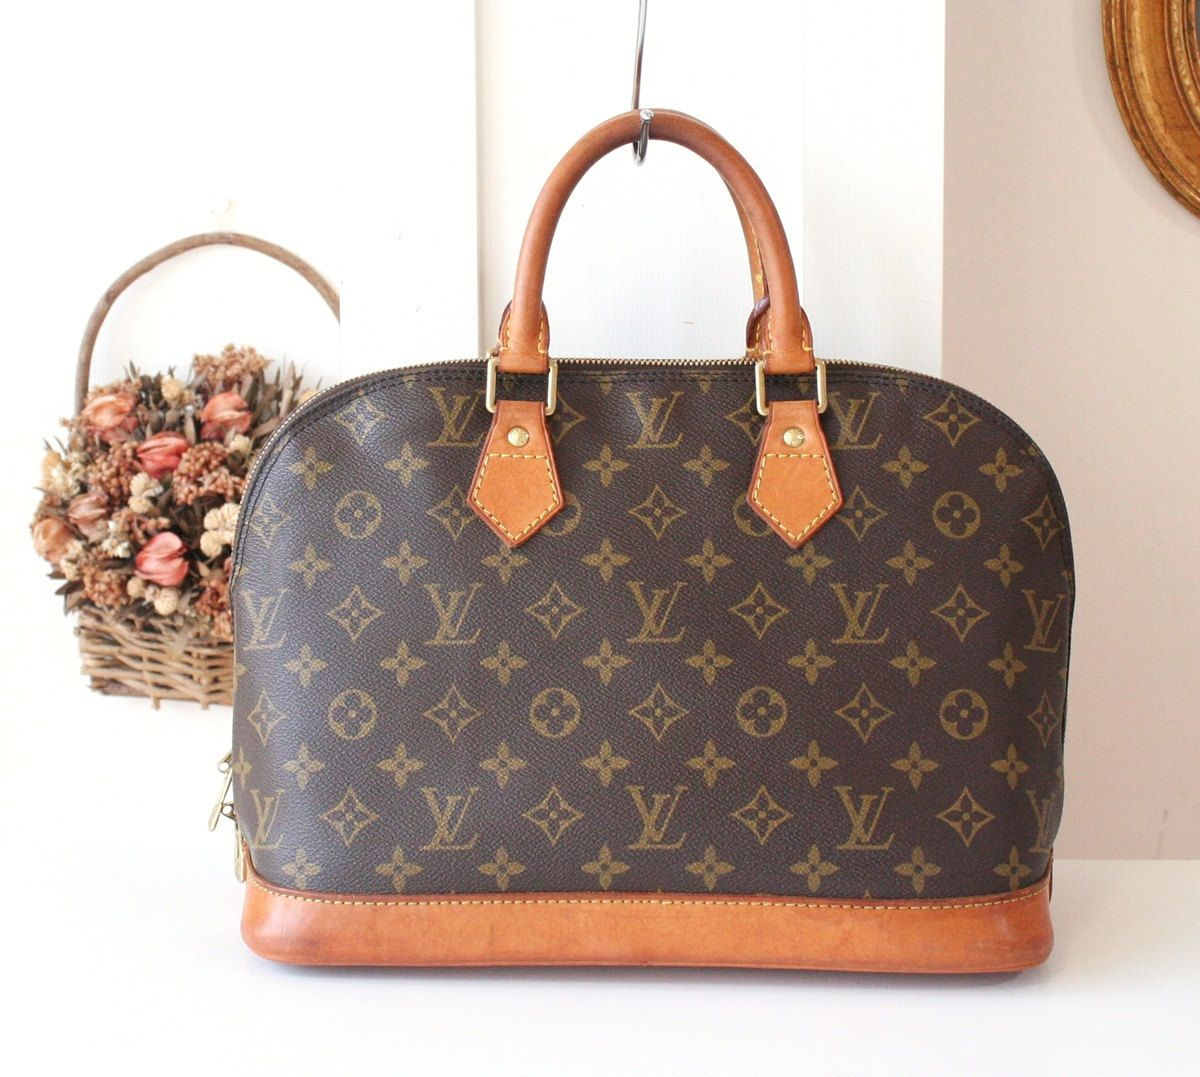 1b53745d834e Louis Vuitton Alma monogram brown handbag authentic purse by hfvin on Etsy   LV  LouisVuitton  Vuitton  Alma  monogram  Brown  handbag  authentic